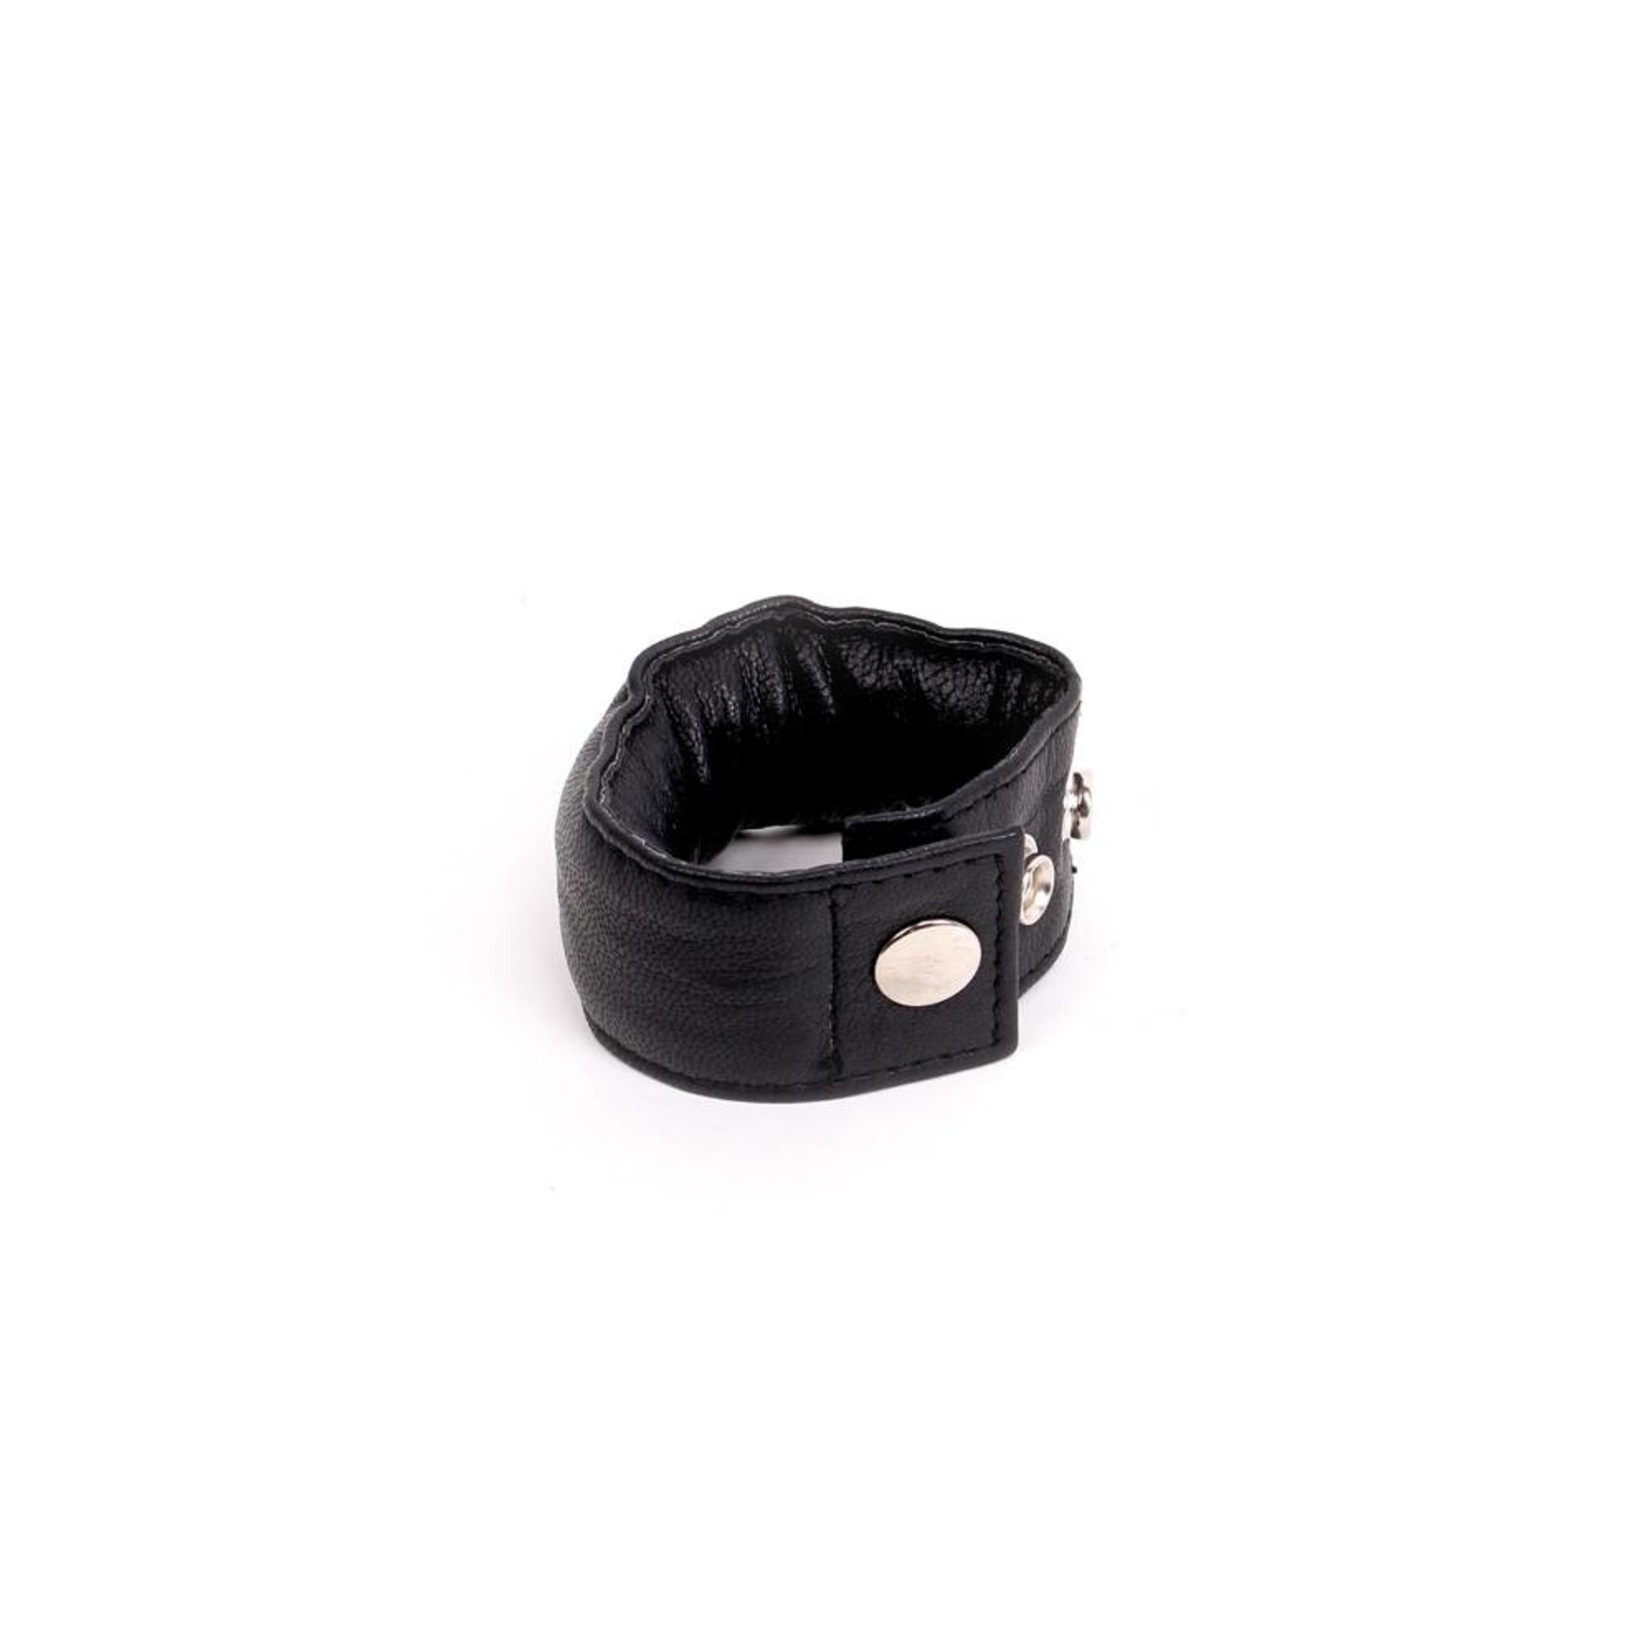 KIOTOS Leather Leather Ball Weight Stretcher - S